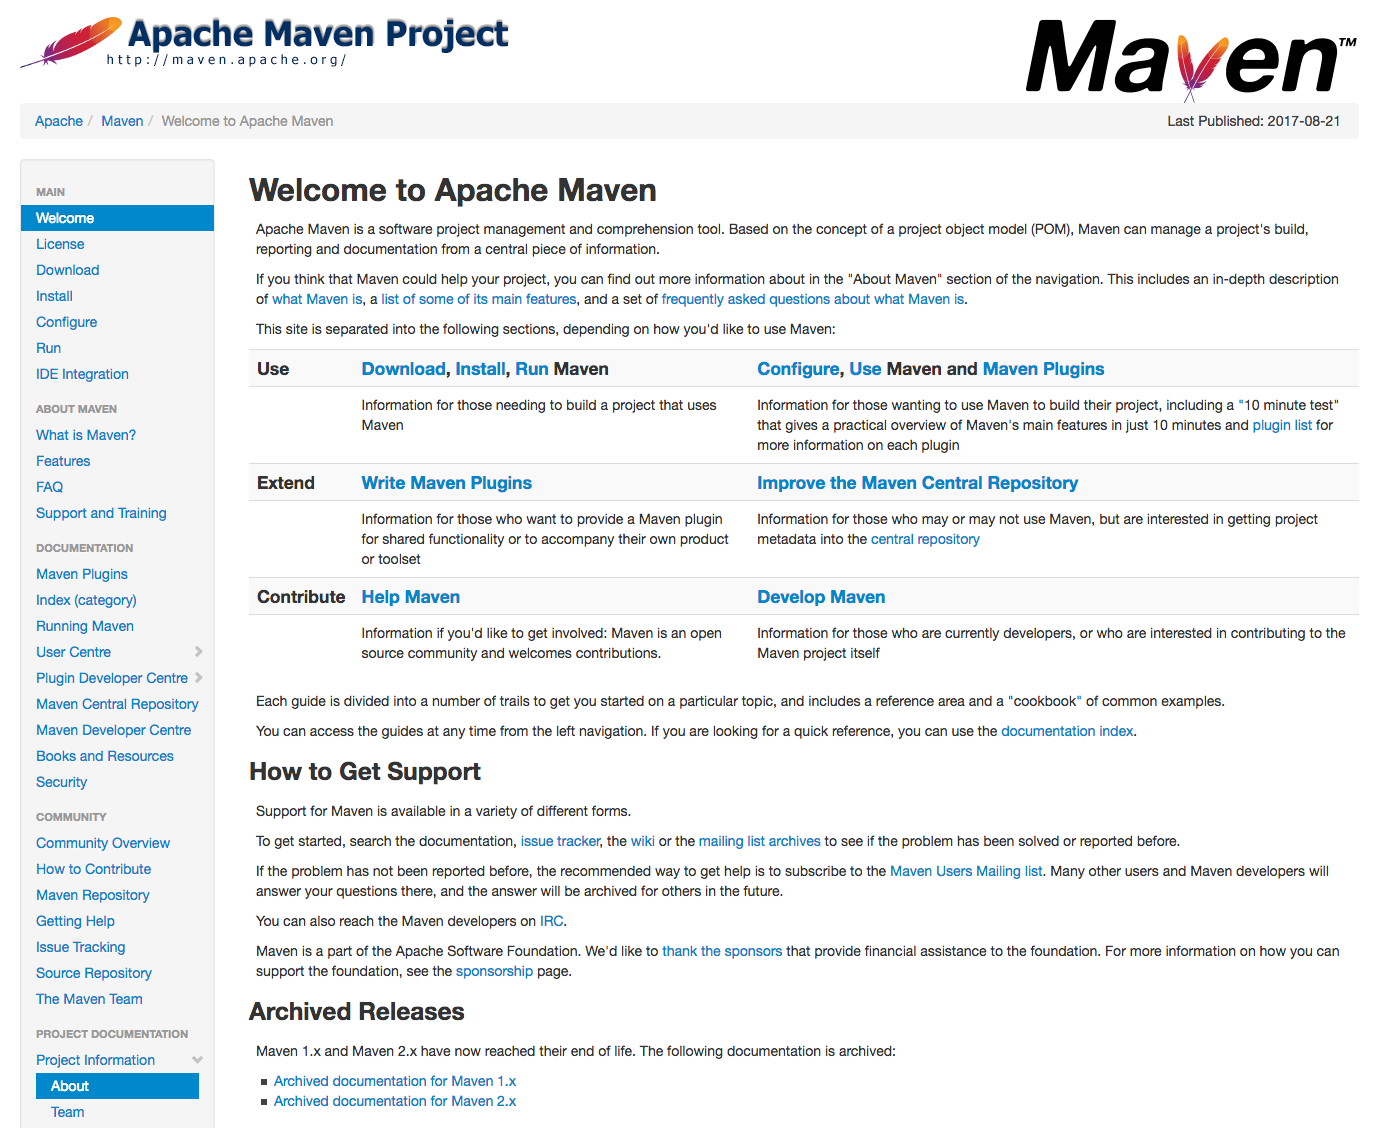 Jobs - Redesign Maven website